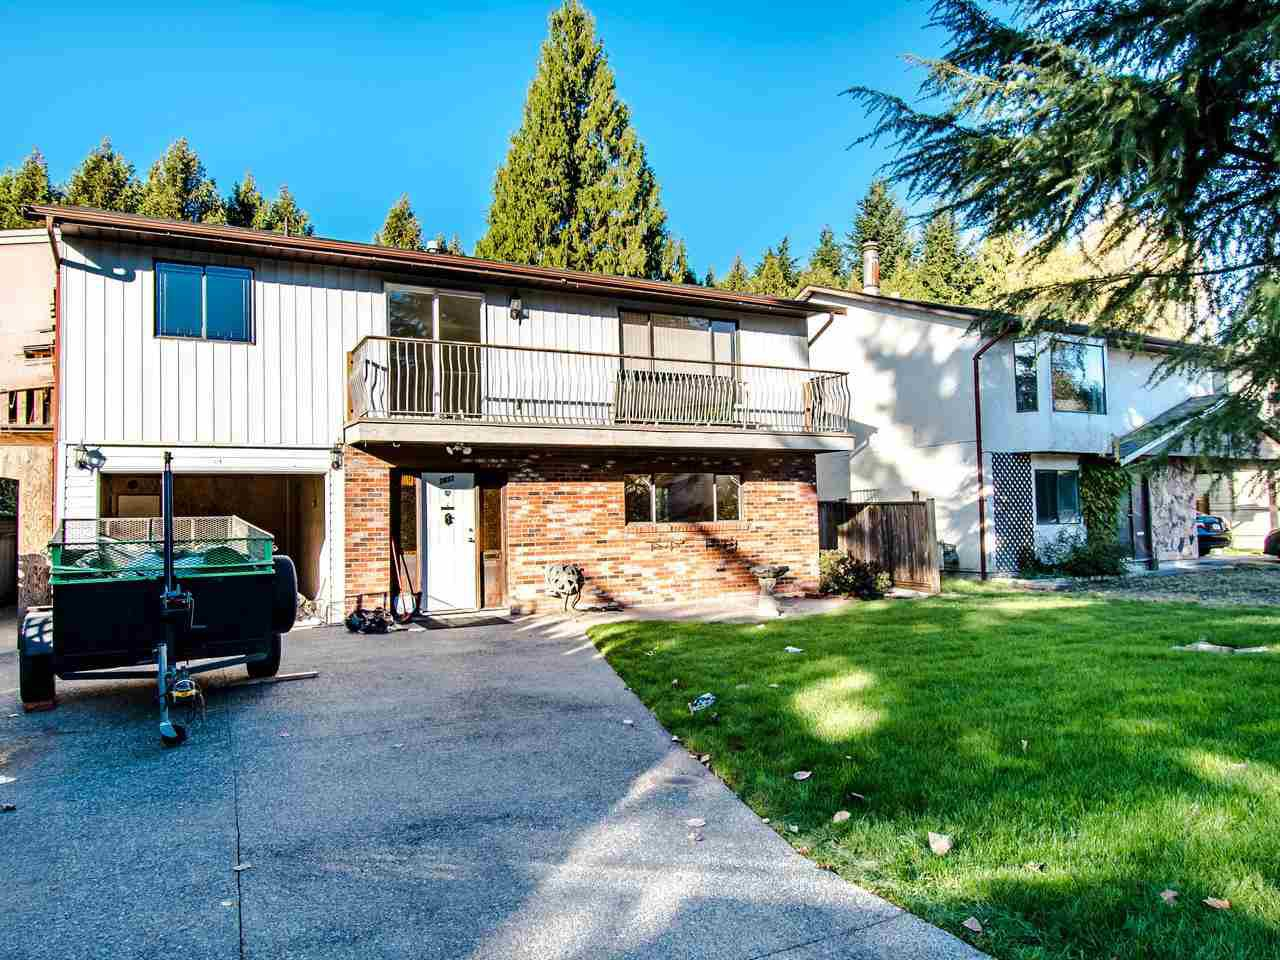 Main Photo: 2827 COMMONWEALTH Street in Port Coquitlam: Glenwood PQ House for sale : MLS®# R2417210